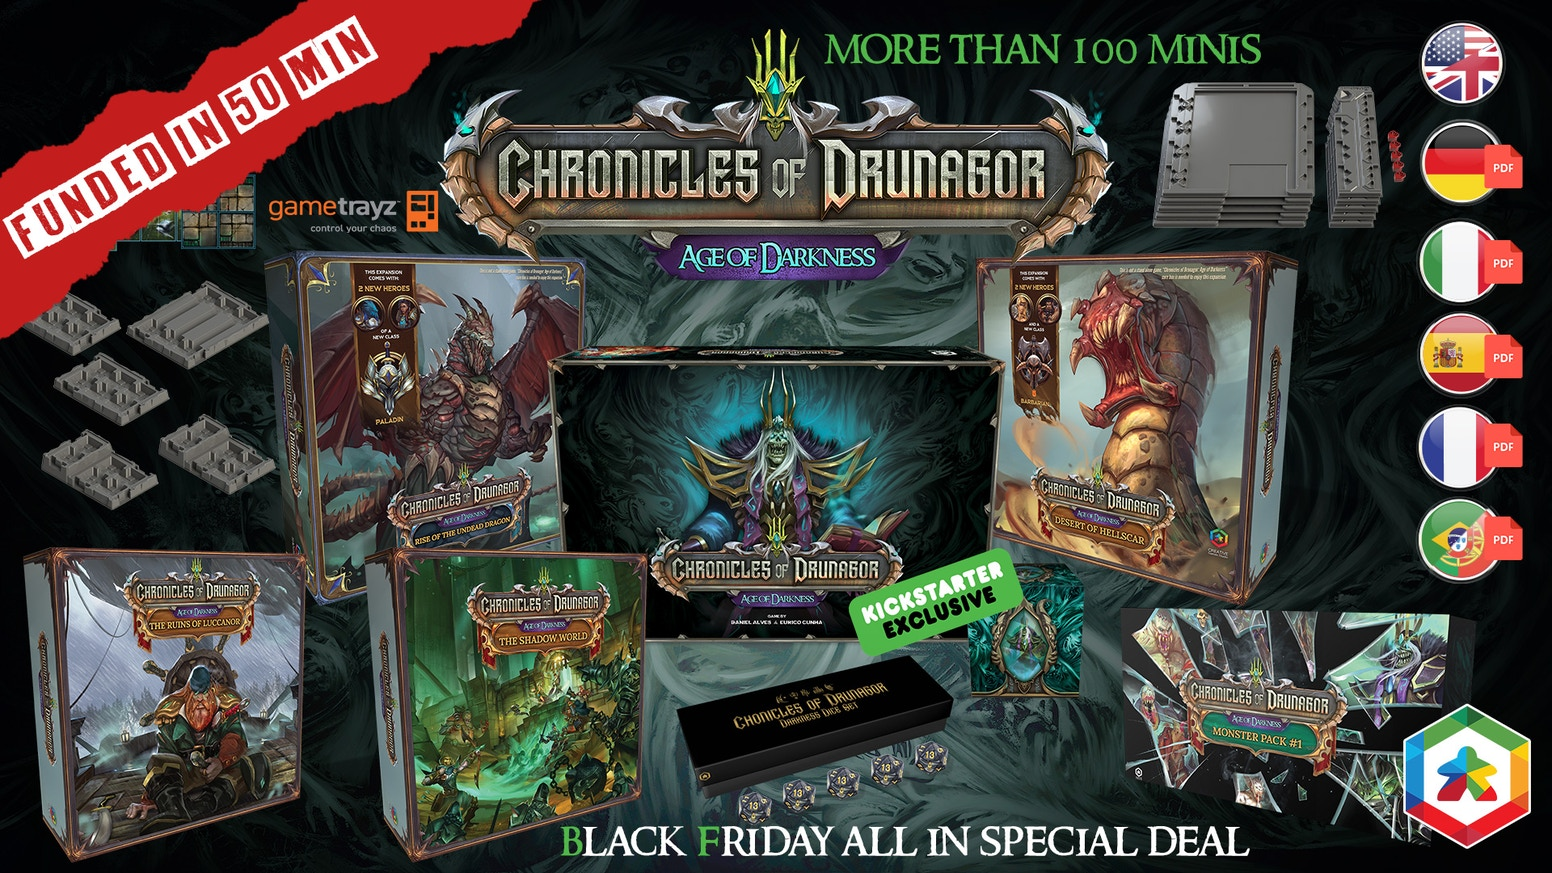 Chronicles of Drunagor: Age of Darkness is a fully cooperative dungeon crawler for 1 to 5 players.